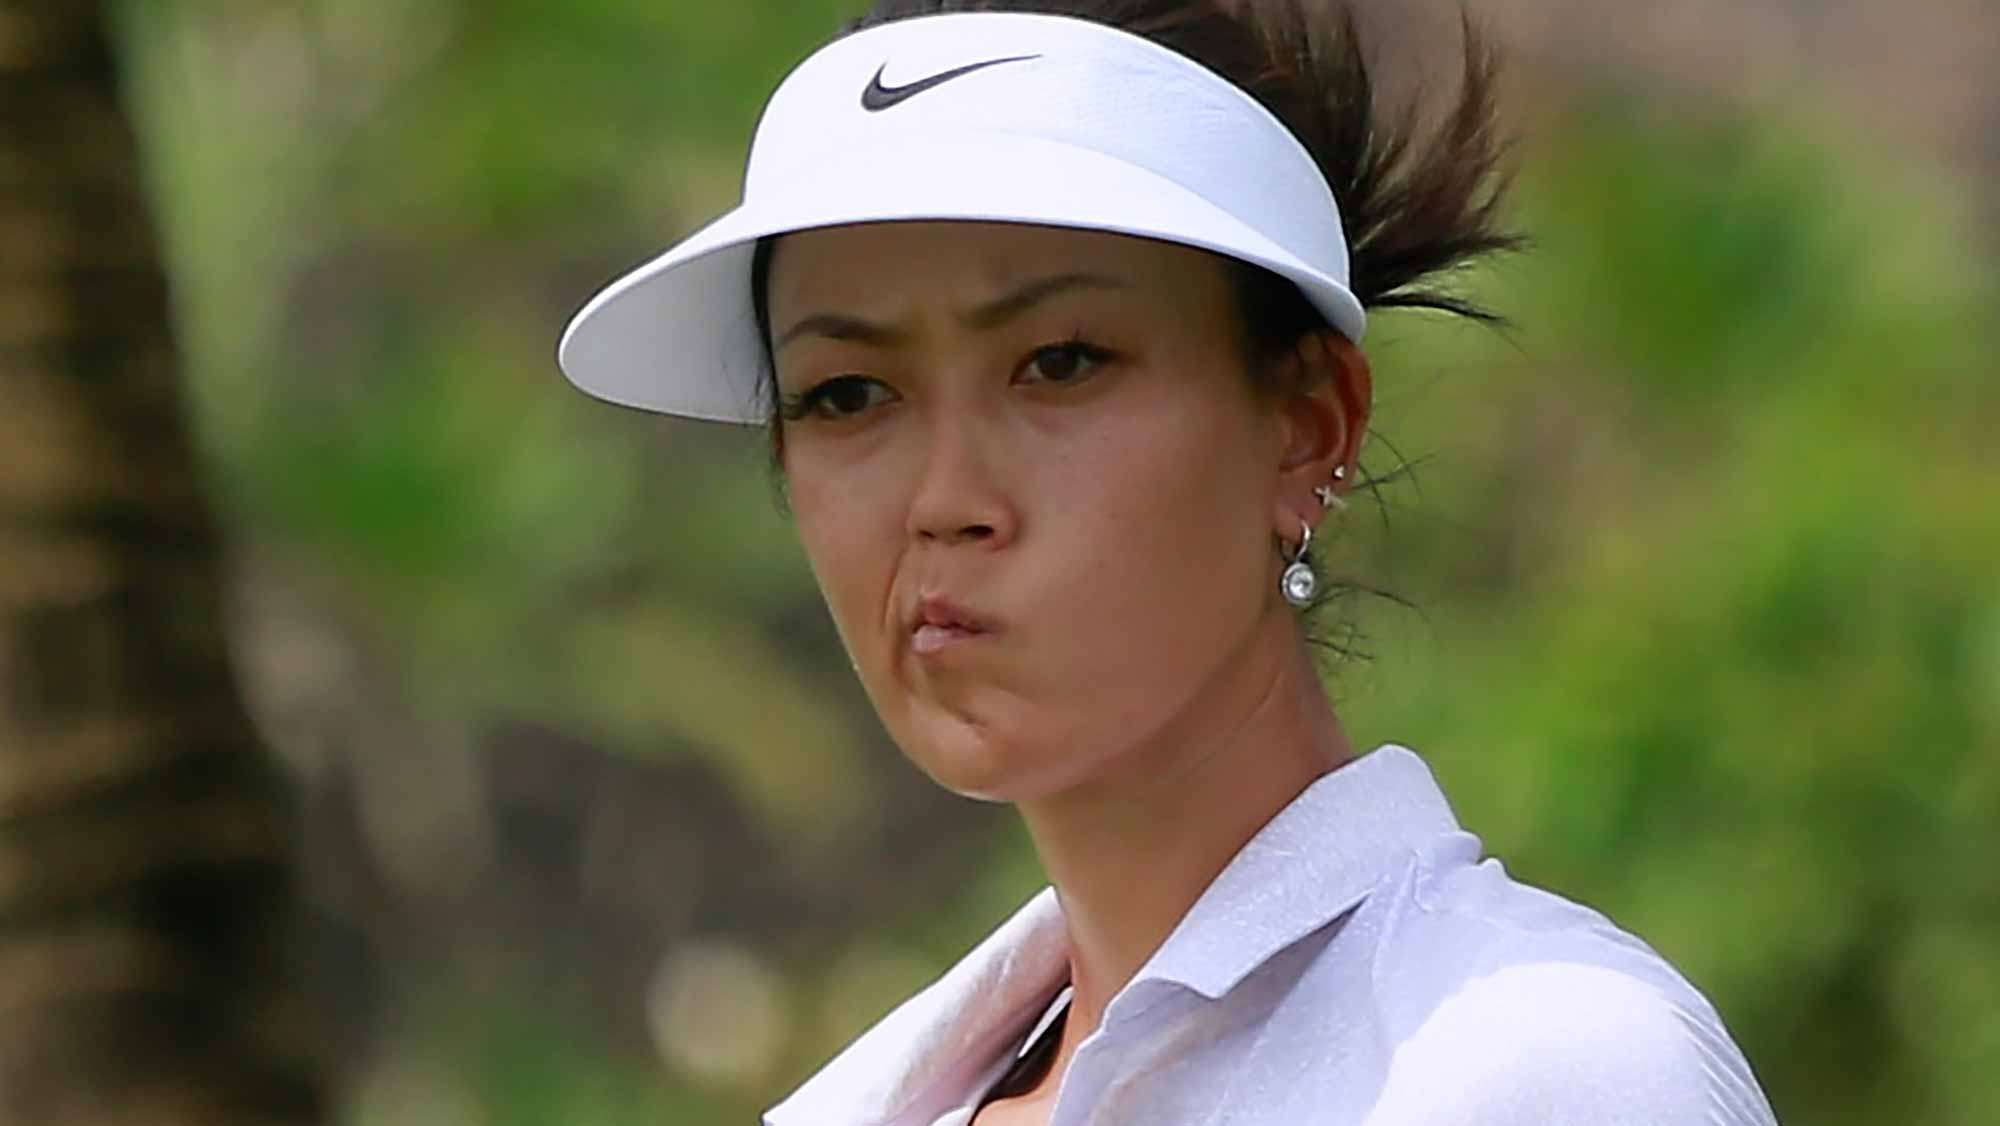 Michelle Wie of United States reacts after her putt at her putt at 18th hole during Round 2 of Blue Bay LPGA